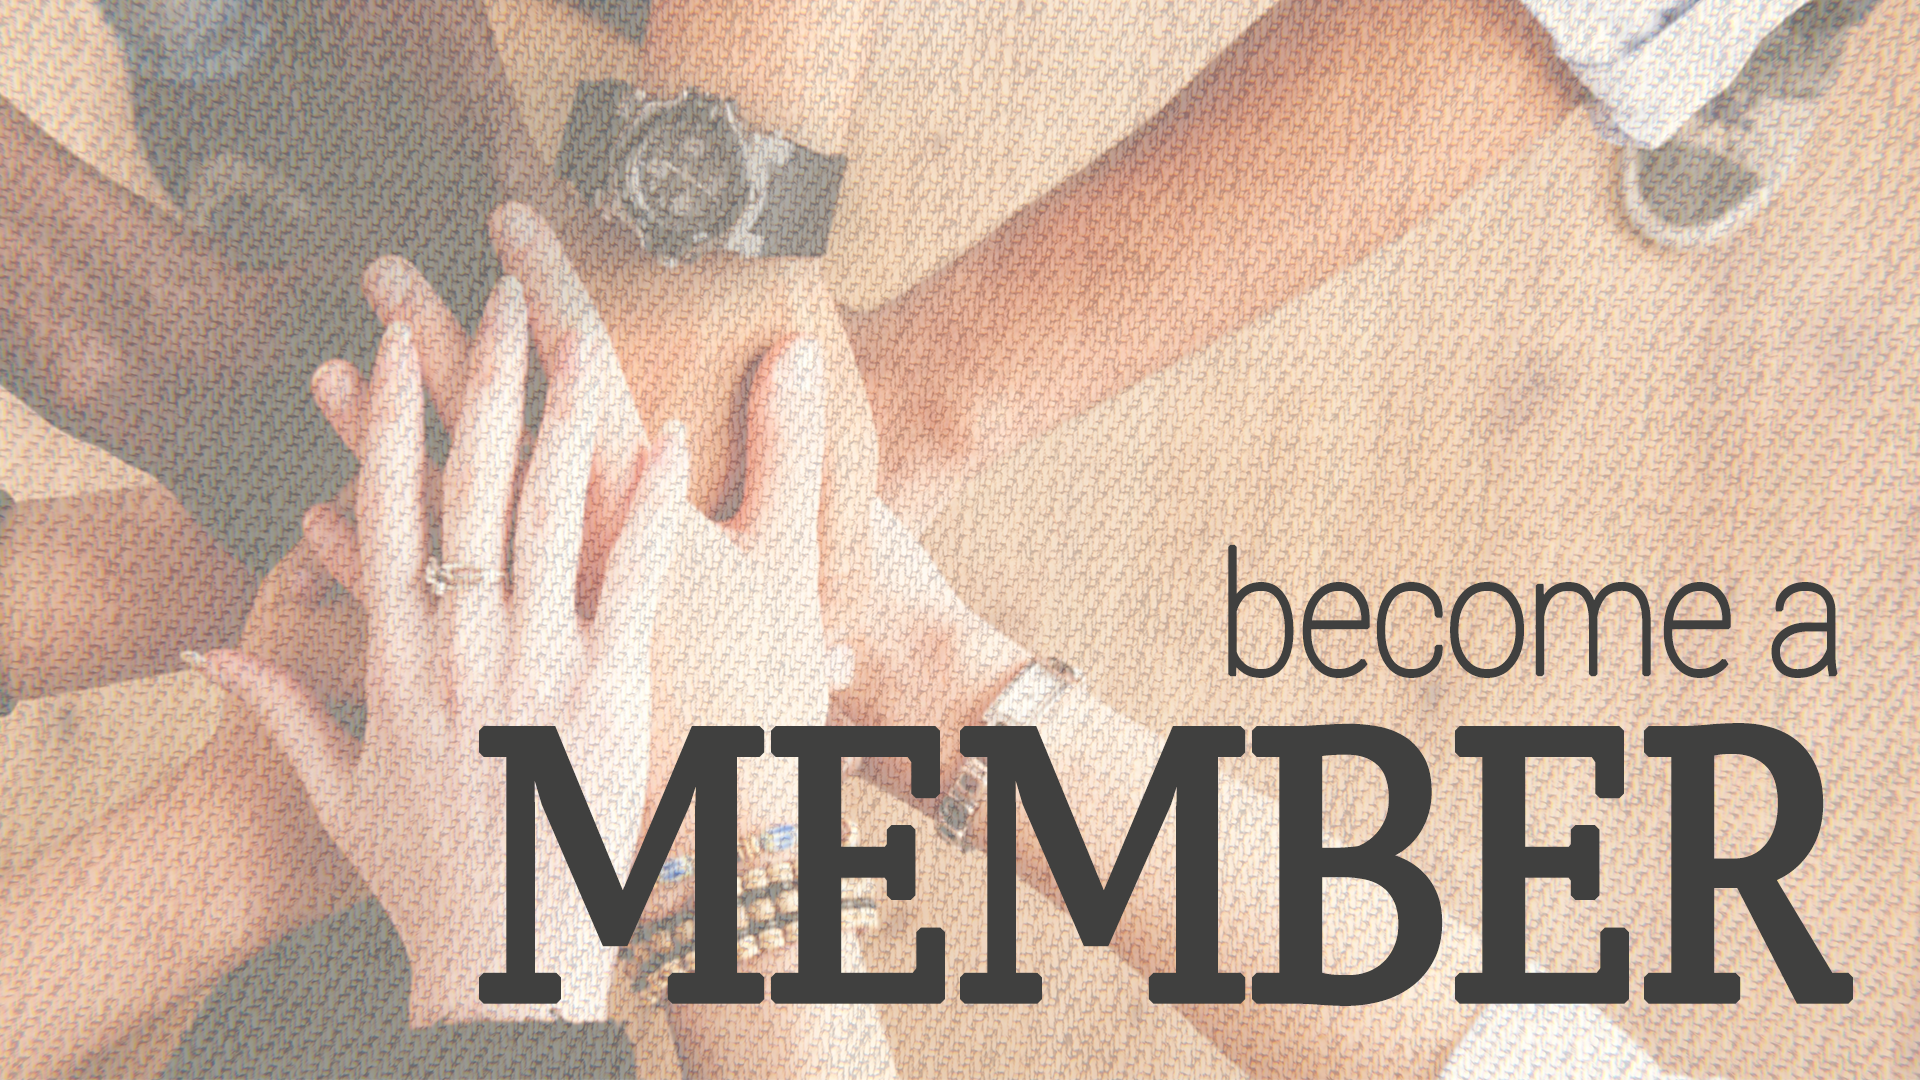 Pursuing Membership? - Follow our 3 Step Process